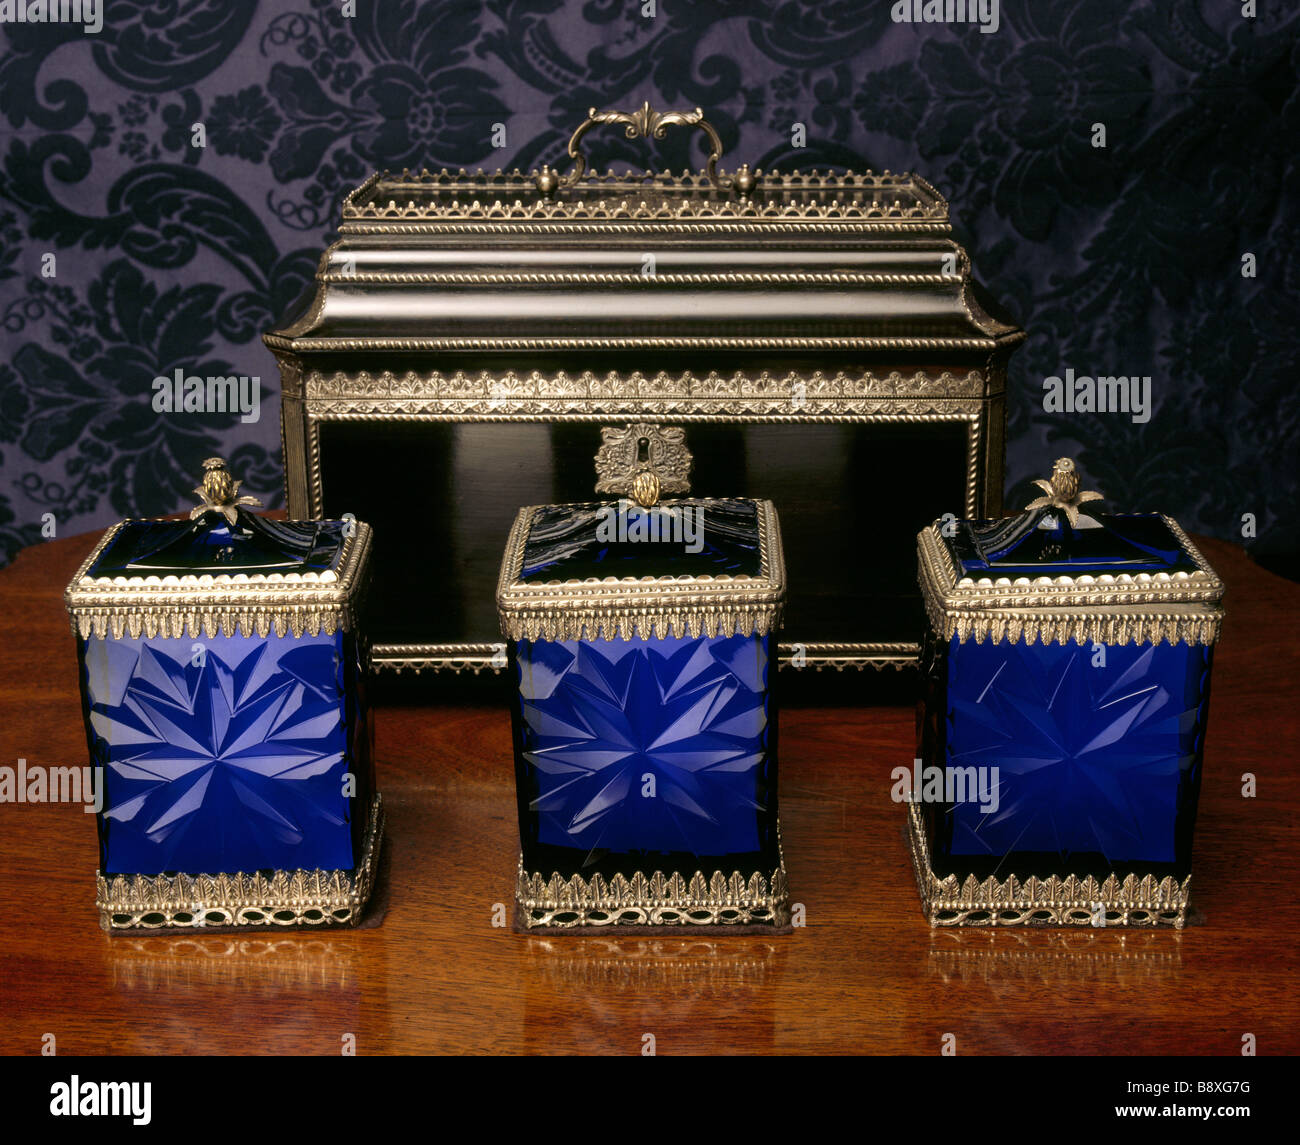 A set of three blue glass Tea Caddies and covers mounted in silver ebony case behind mid C18th Stock Photo